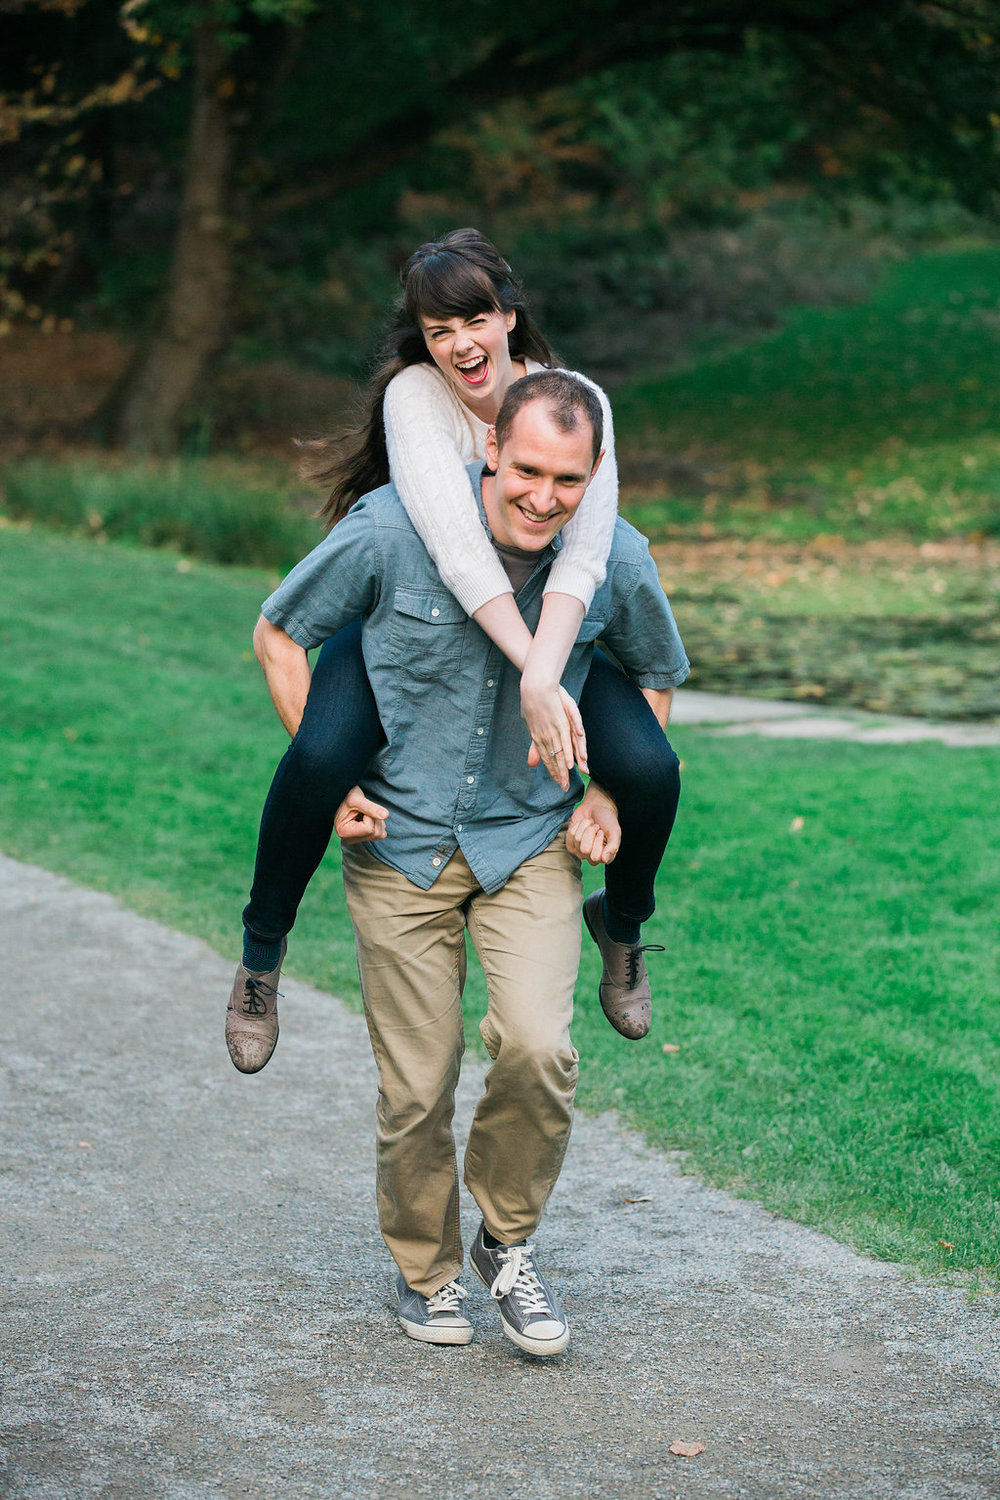 Tessa+Aaron_Engagement_Seattle_Arboretum_Adina+Preston+Weddings2.jpg